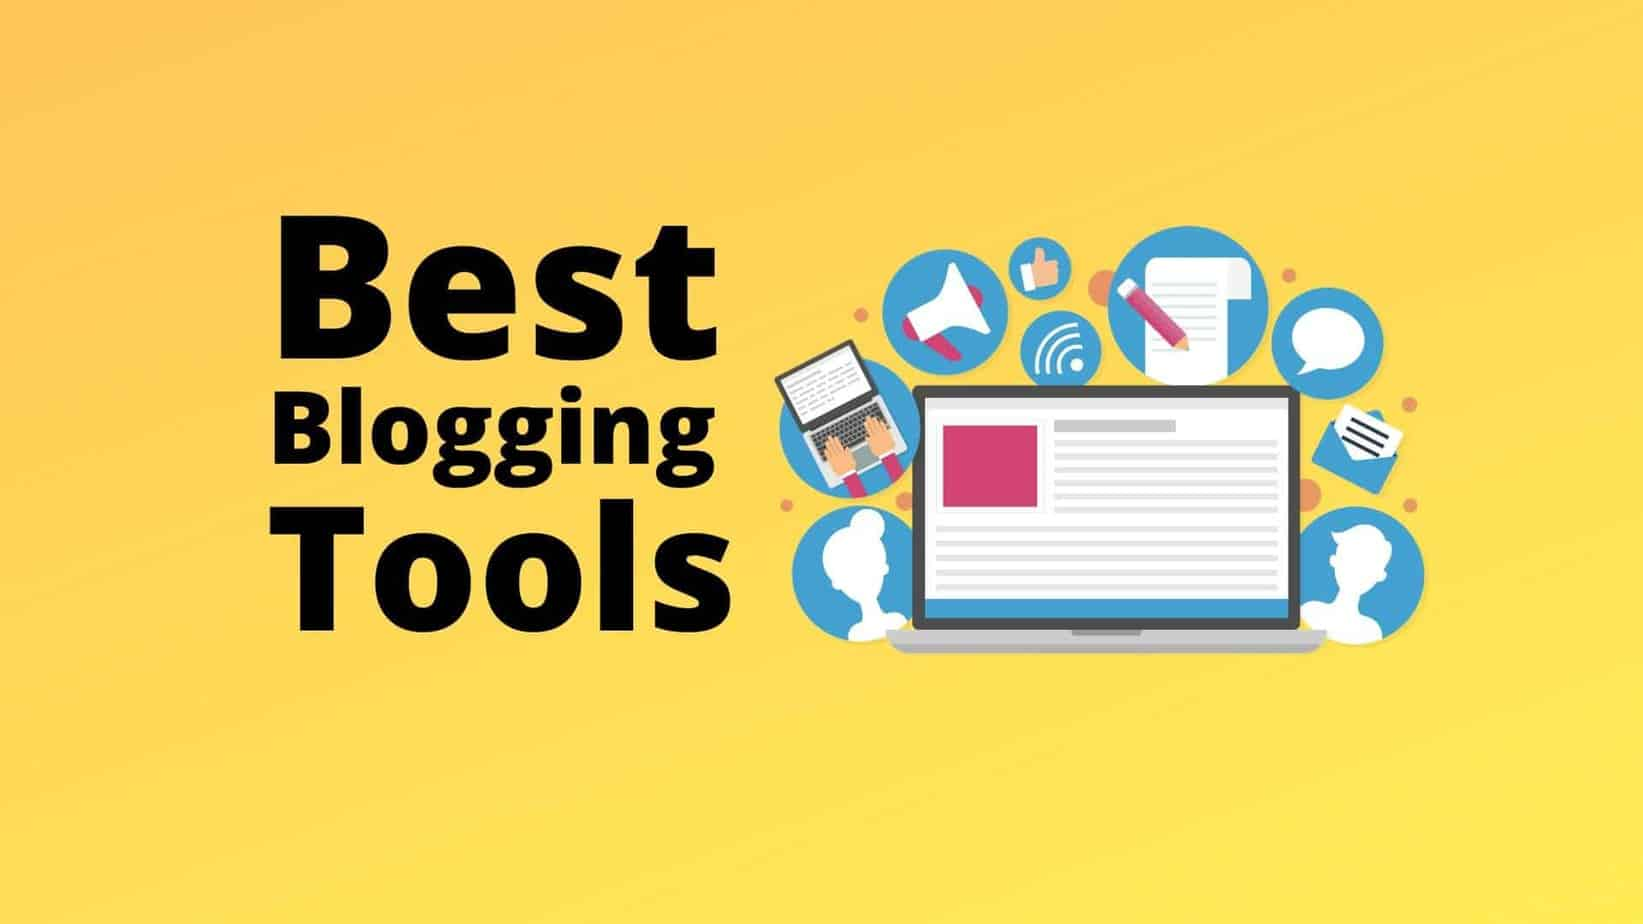 Blogging Stack: 14 Blogging Tools To Help You Become A Better Blogger